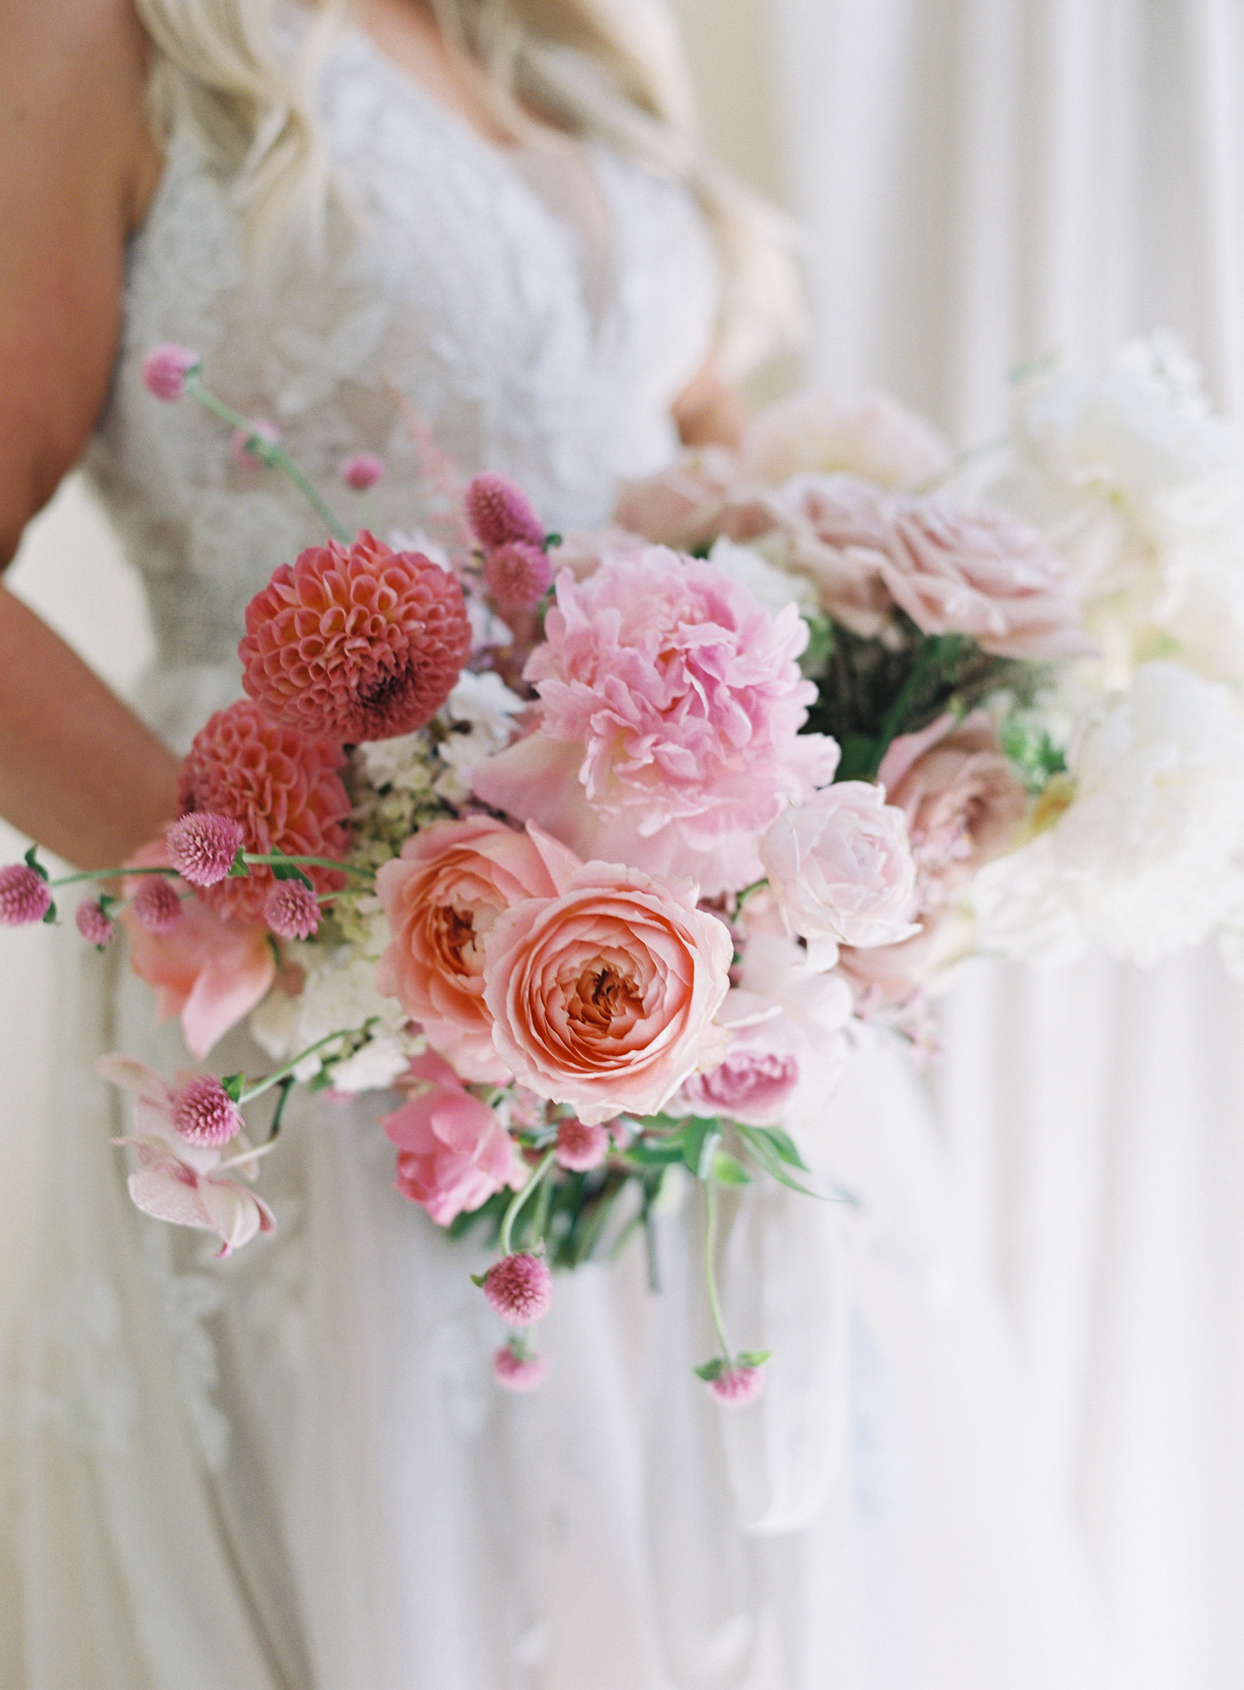 bride holding pink floral wedding bouquet